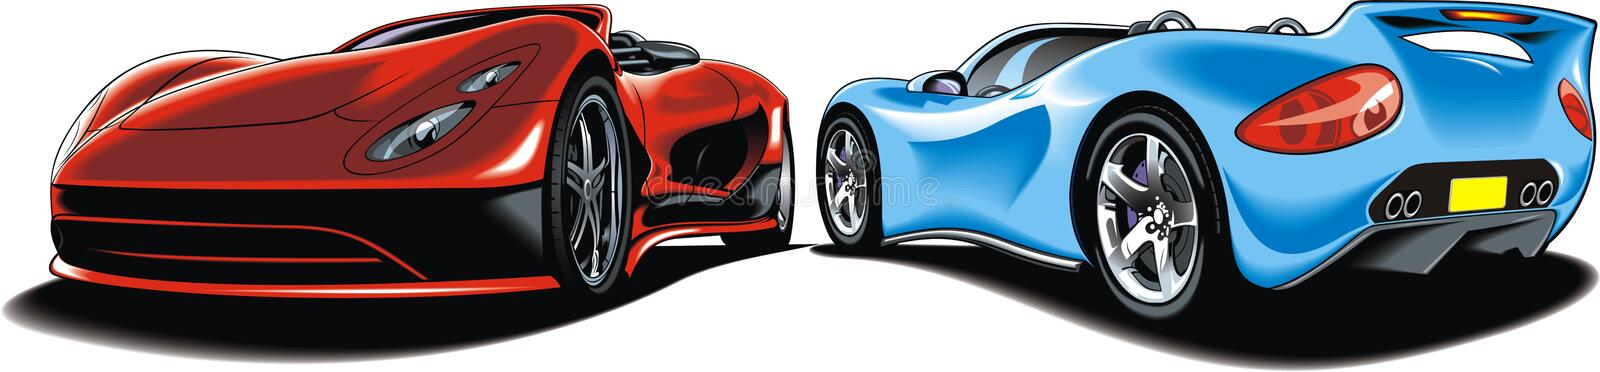 My original sport cars design vector illustration